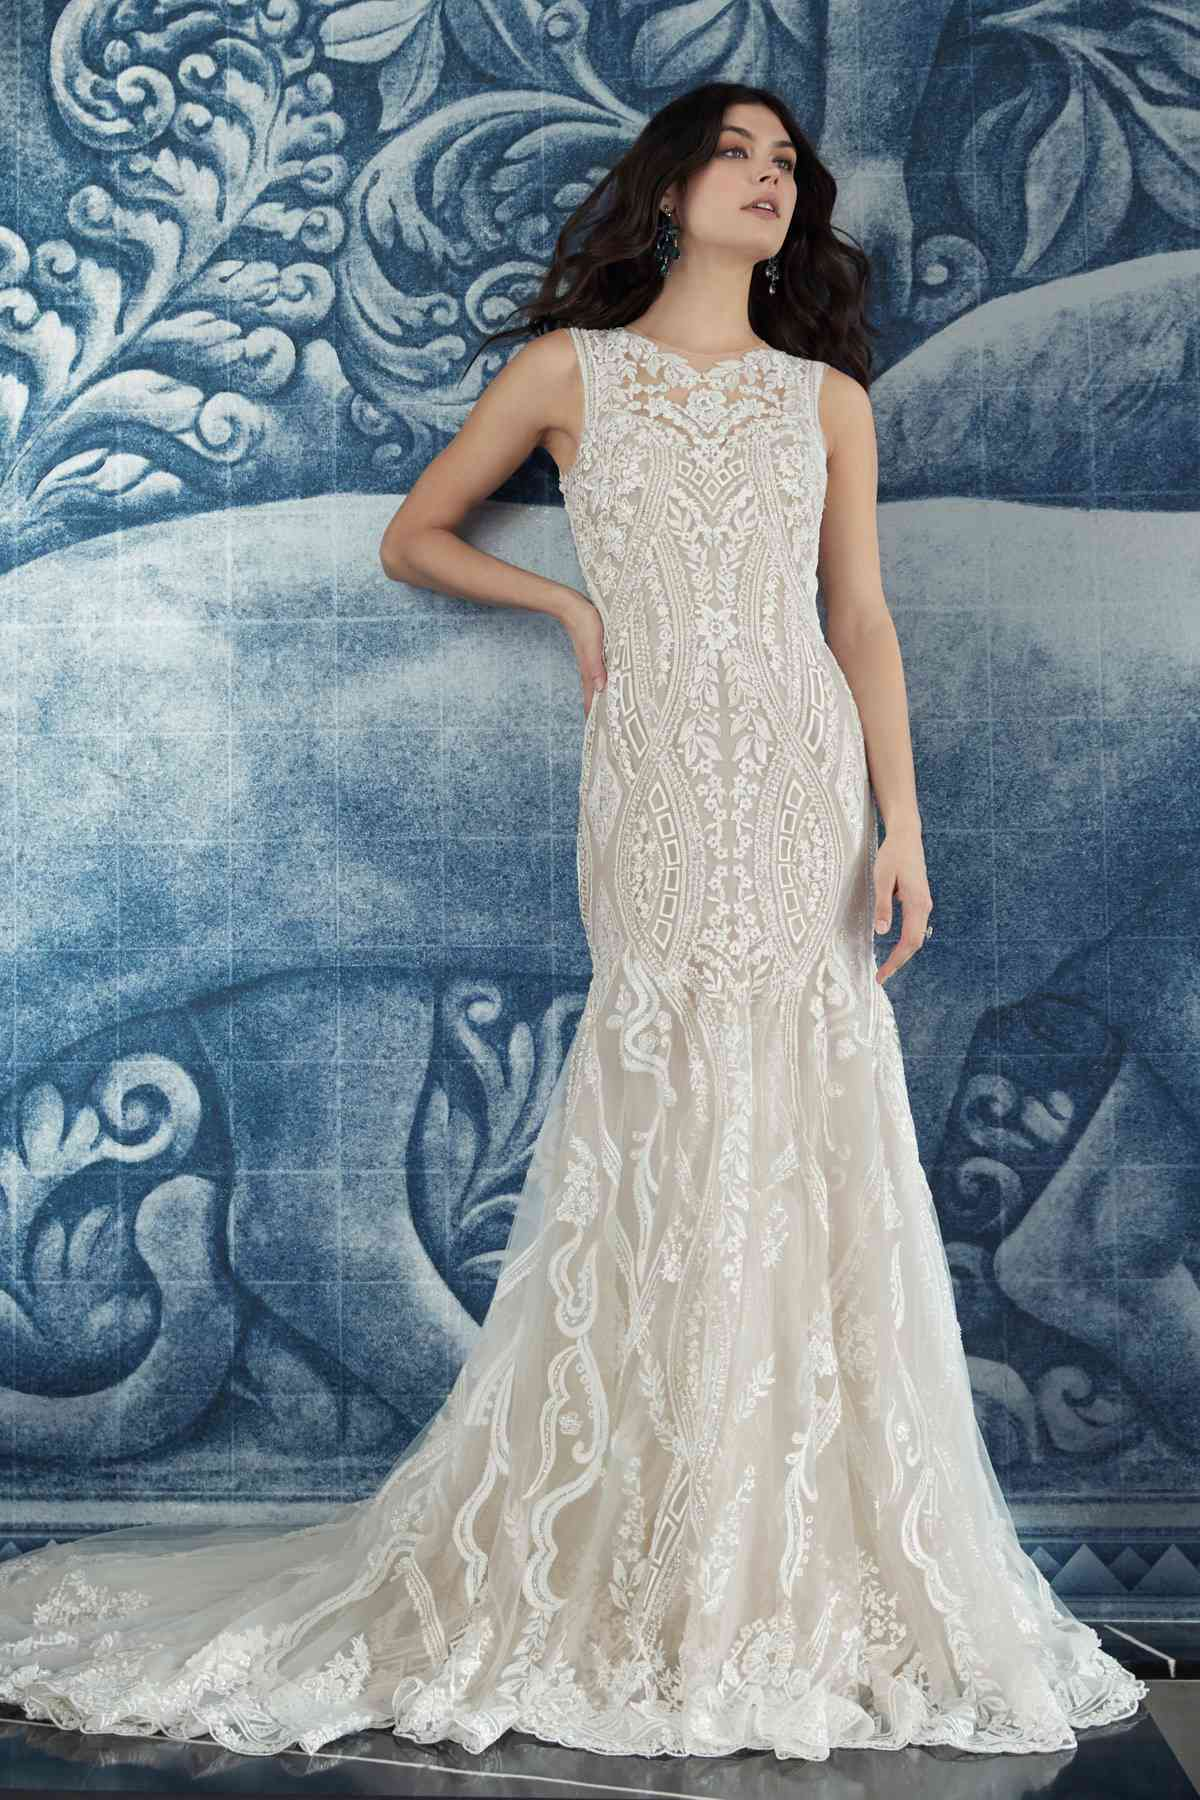 Model in allover lace fit-and-flare gown with a jeweled high neckline